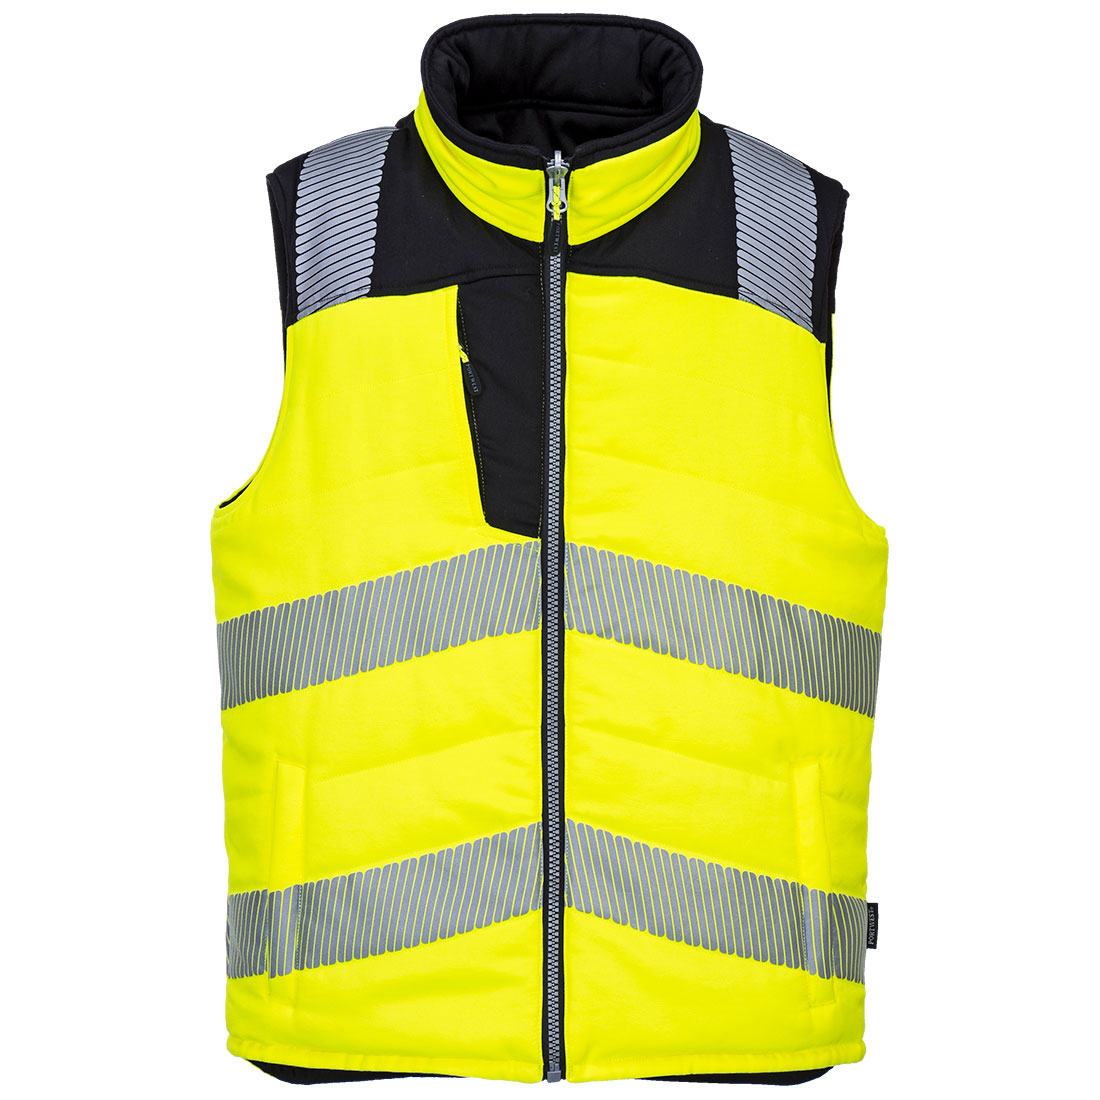 PW3 Hi-Vis Reversible Bodywarmer Yellow/Black 3 XL